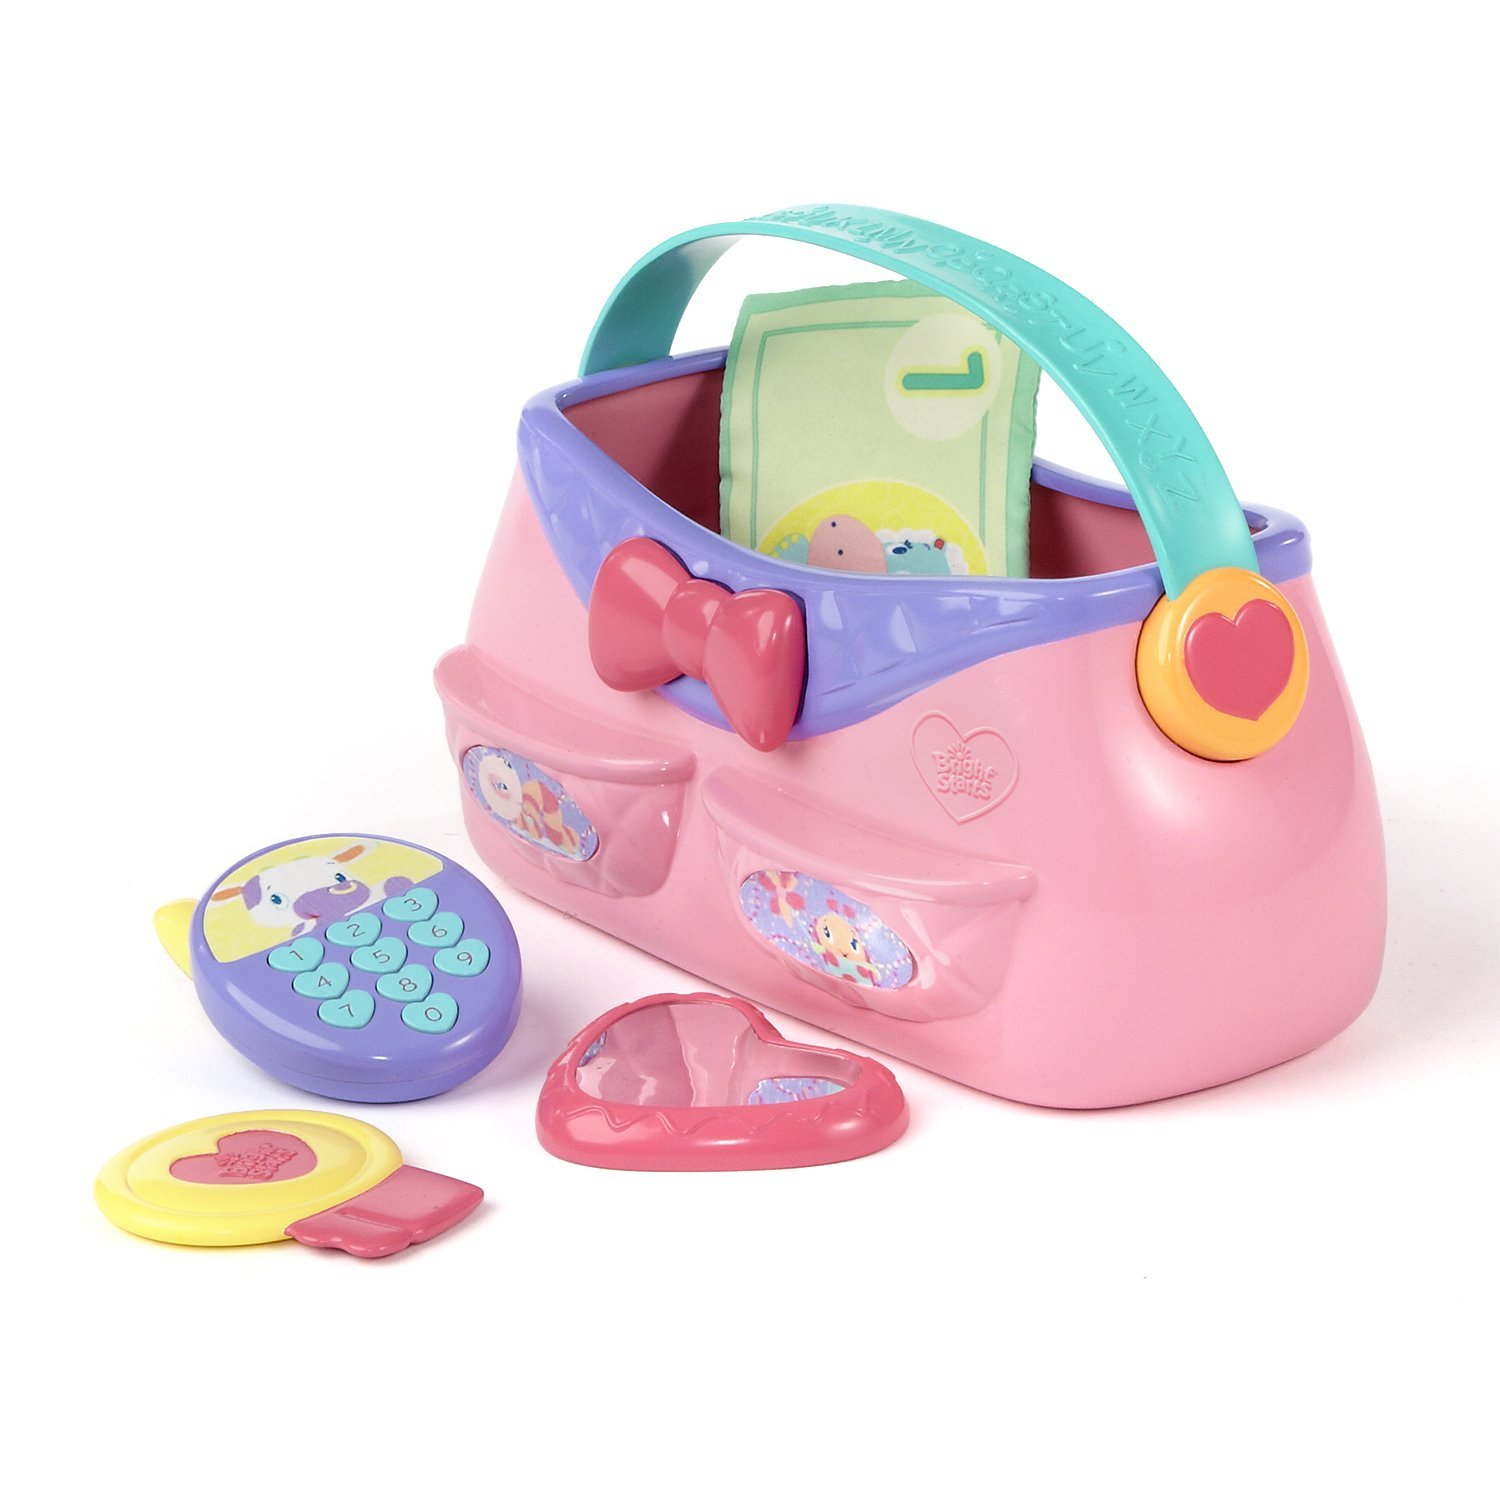 Bella S First Purse Bright Starts Toy Review It S